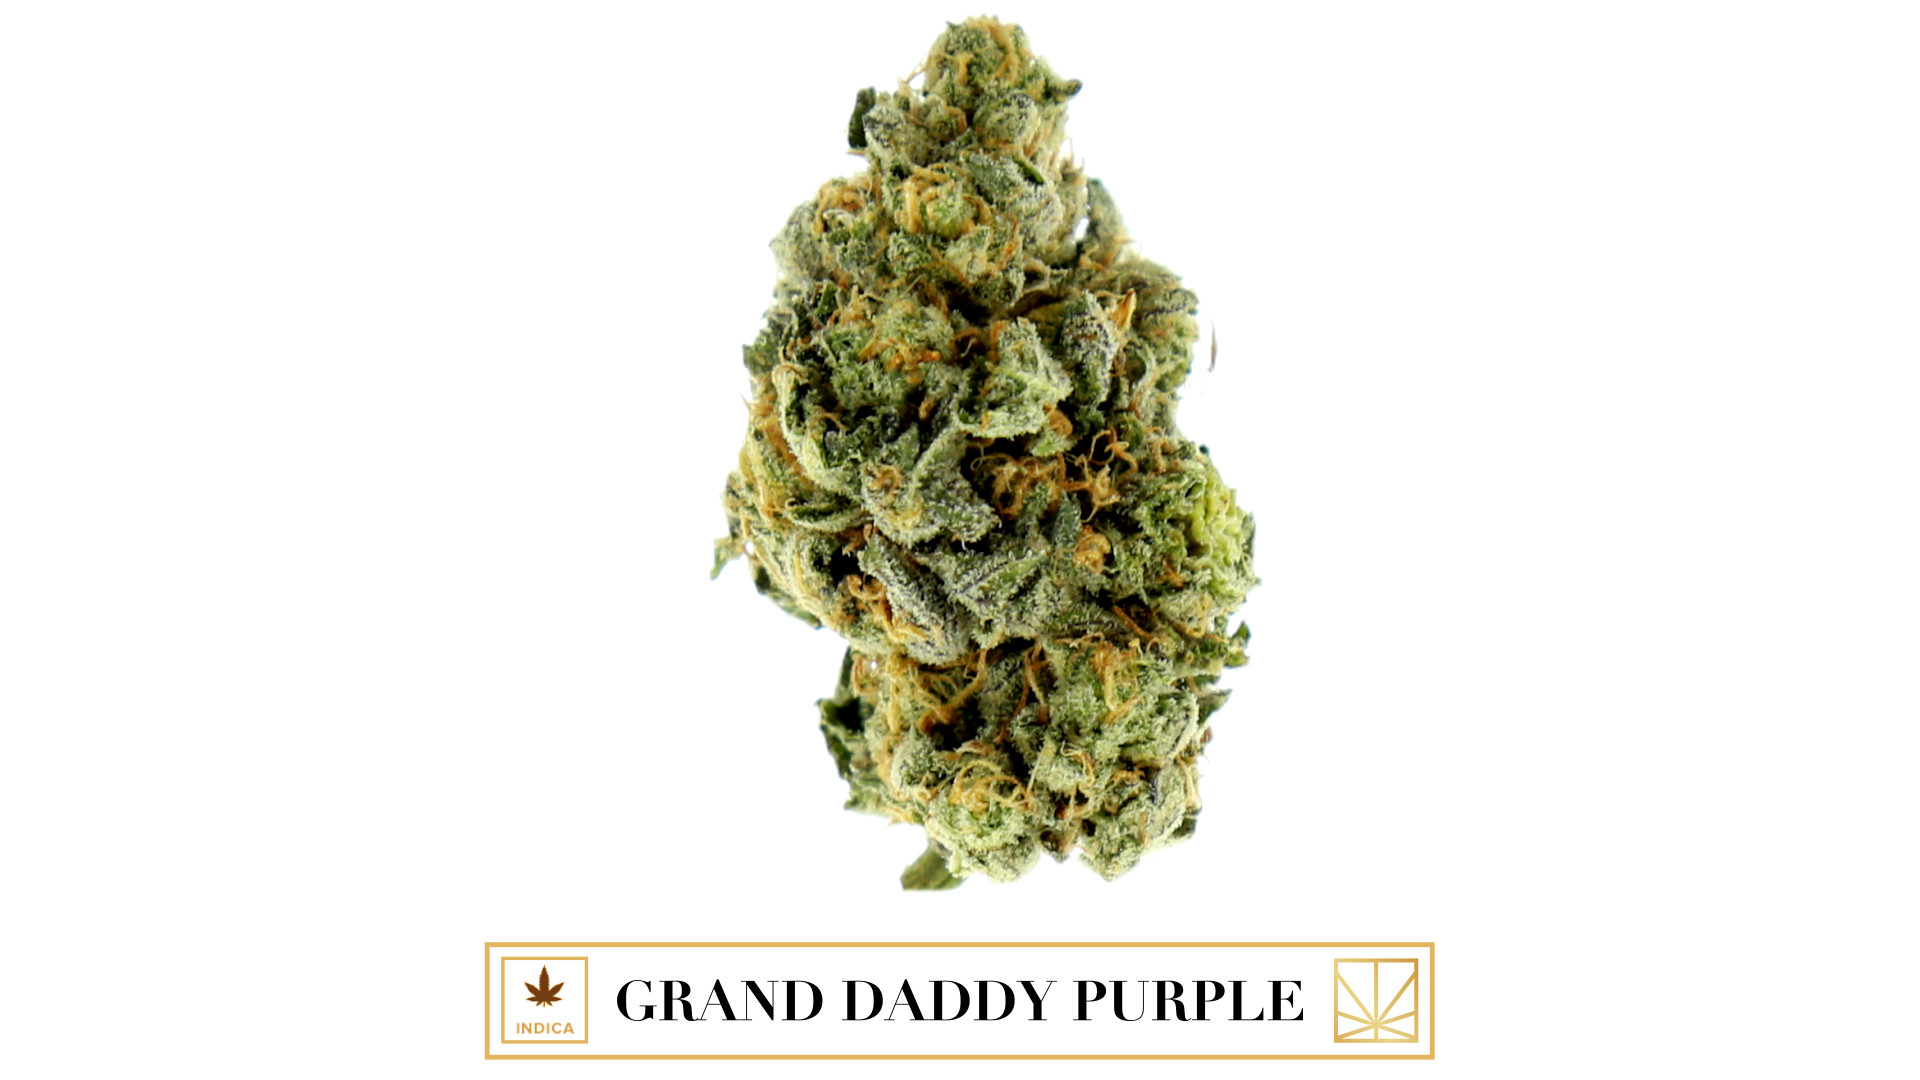 """<p><em>""""I just smoked me some purple / Now I'm waiting for my high to come down.""""</em></p>  <p>With dense deep purple buds and clusters of thick orange hairs completely covered in crystals, Grand Daddy Purple, also known as GDP, is almost too pretty to smoke. If you manage to stop staring at this natural work of art long enough to spark it up, you'll see that he's more than just a pretty face. A cross between indicas Big Bud and Urkle, Grand Daddy Purple has a delicious sweet grape flavor. The intense effects of GDP completely relax the body and the mind. Not a completely anti-social strain, Grand Daddy Purple encourages happiness but will slow you down enough that you won't want to engage in any friendly debates until you wait for your """"High 2 Come Down.""""</p>"""